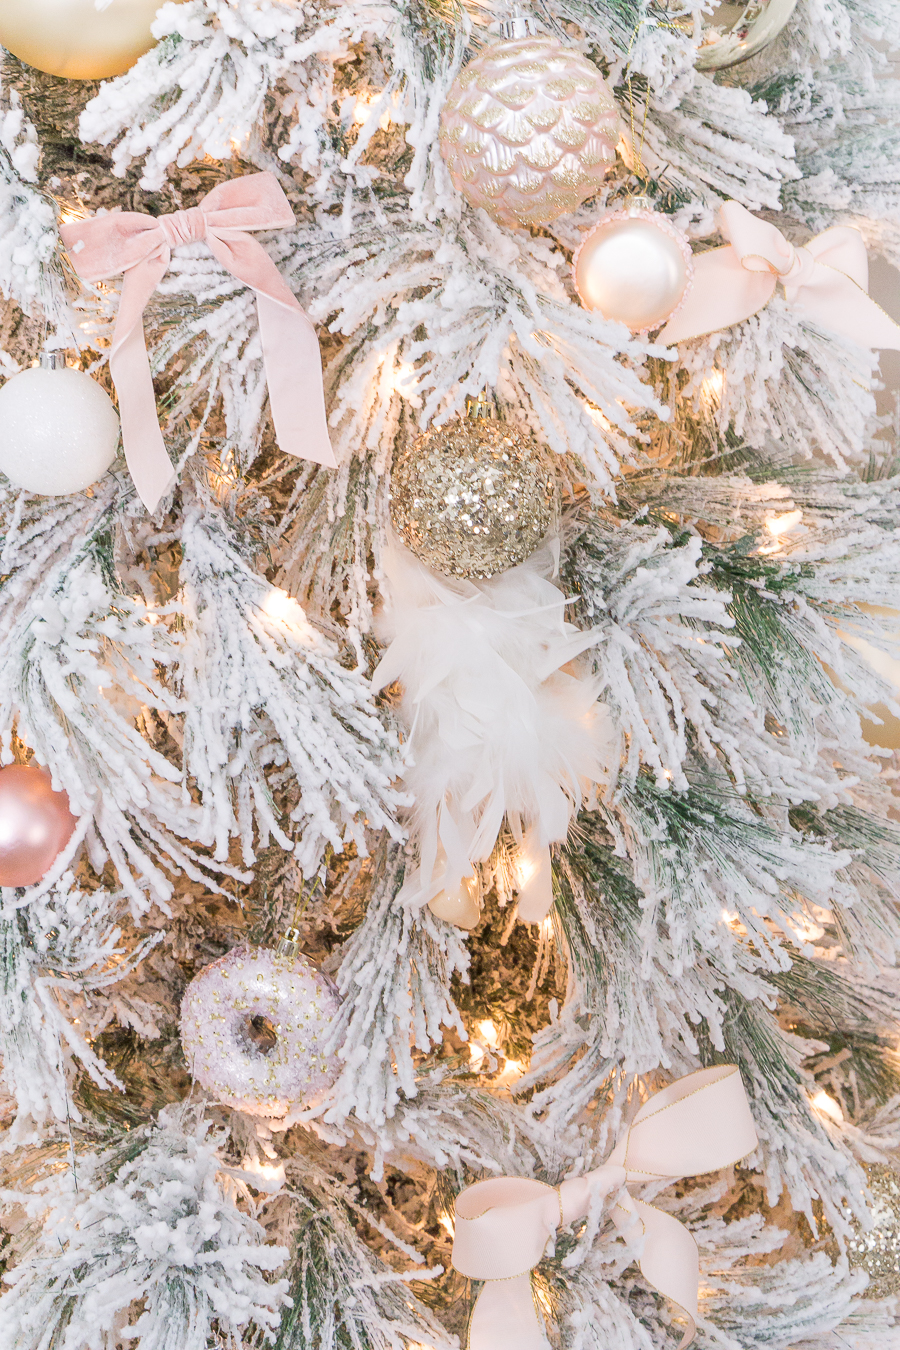 Blush pink holiday Christmas tree decorations - Come discover Pretty Pink Christmas Decor Inspiration with holiday interiors as well as shopping resources. #pinkChristmas #holidaydecor #christmasdecorating